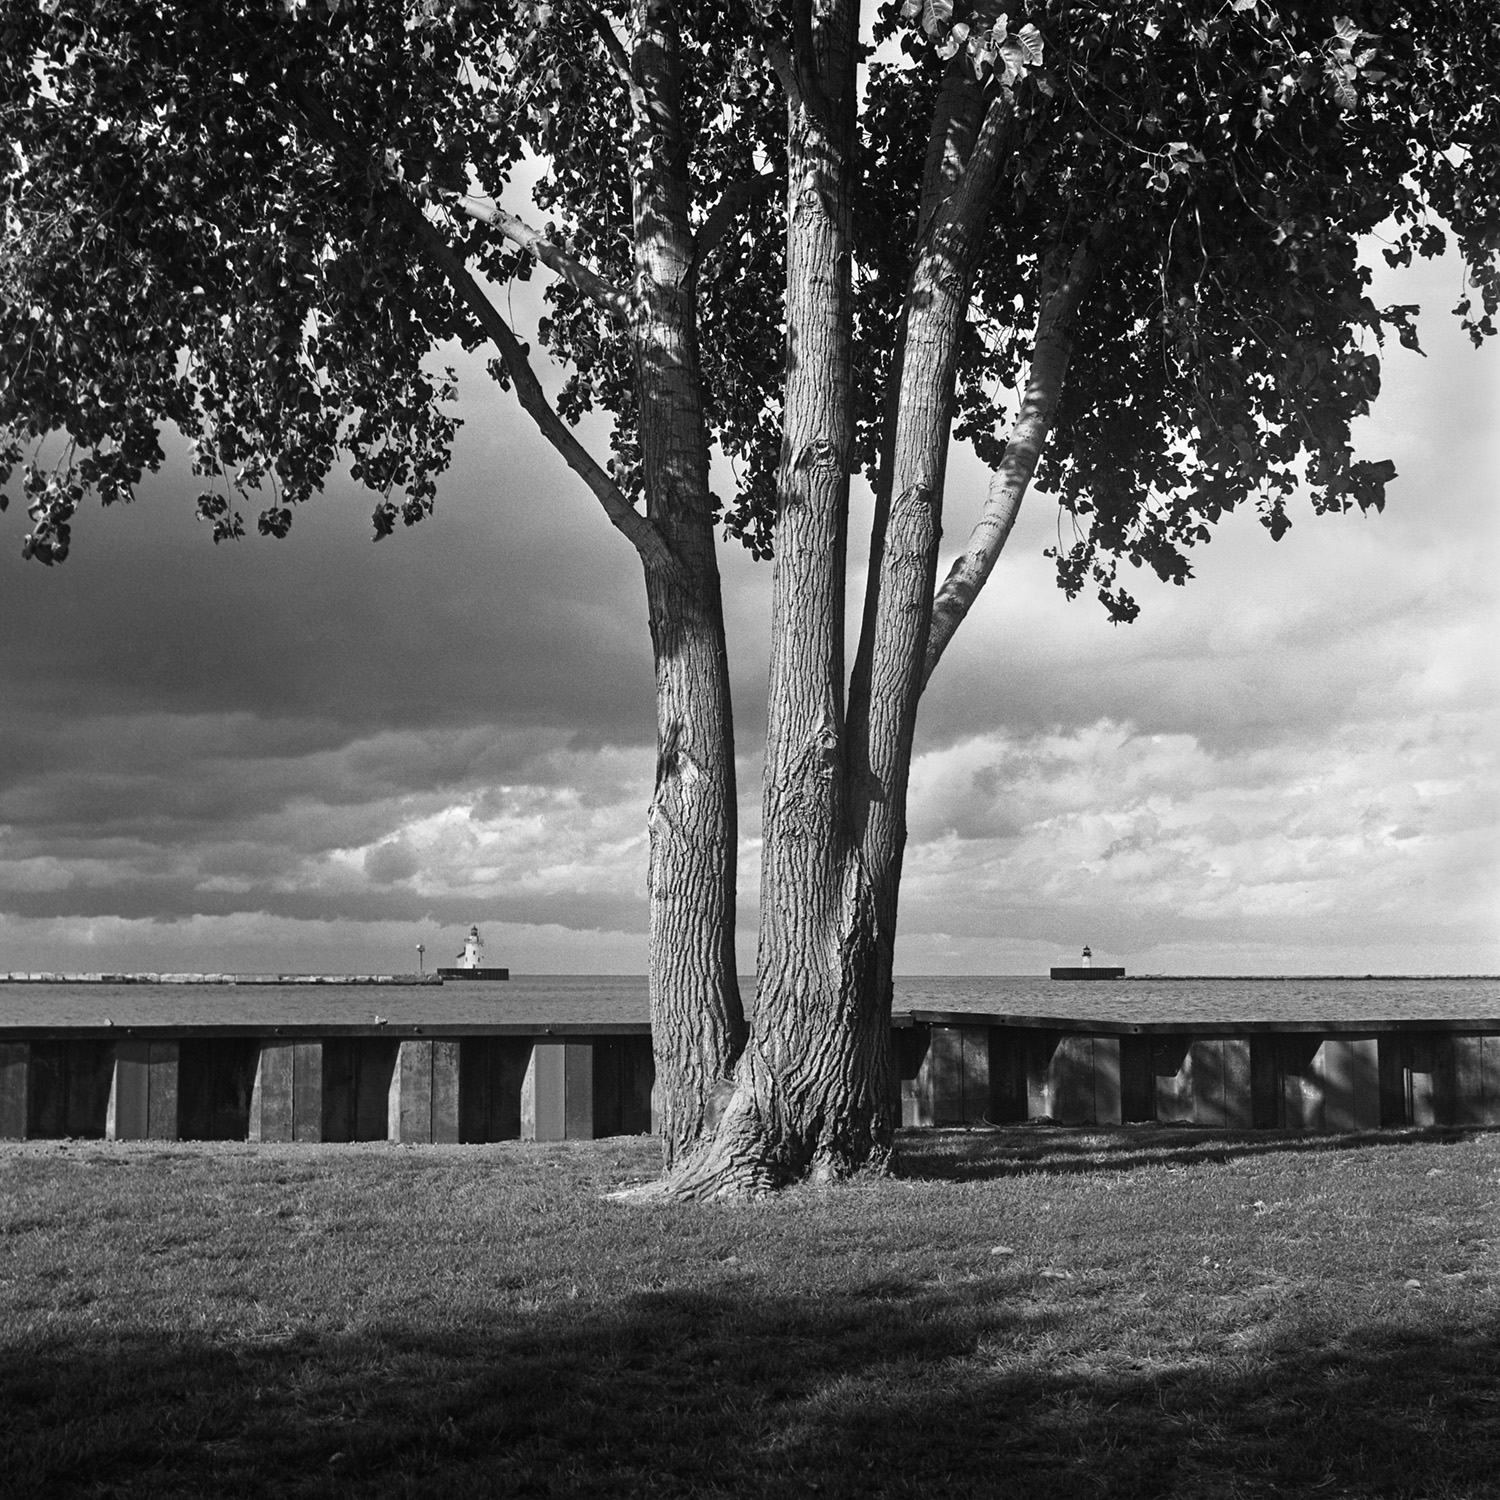 Whiskey Island Tree Cleveland, OH 6x6 BW film